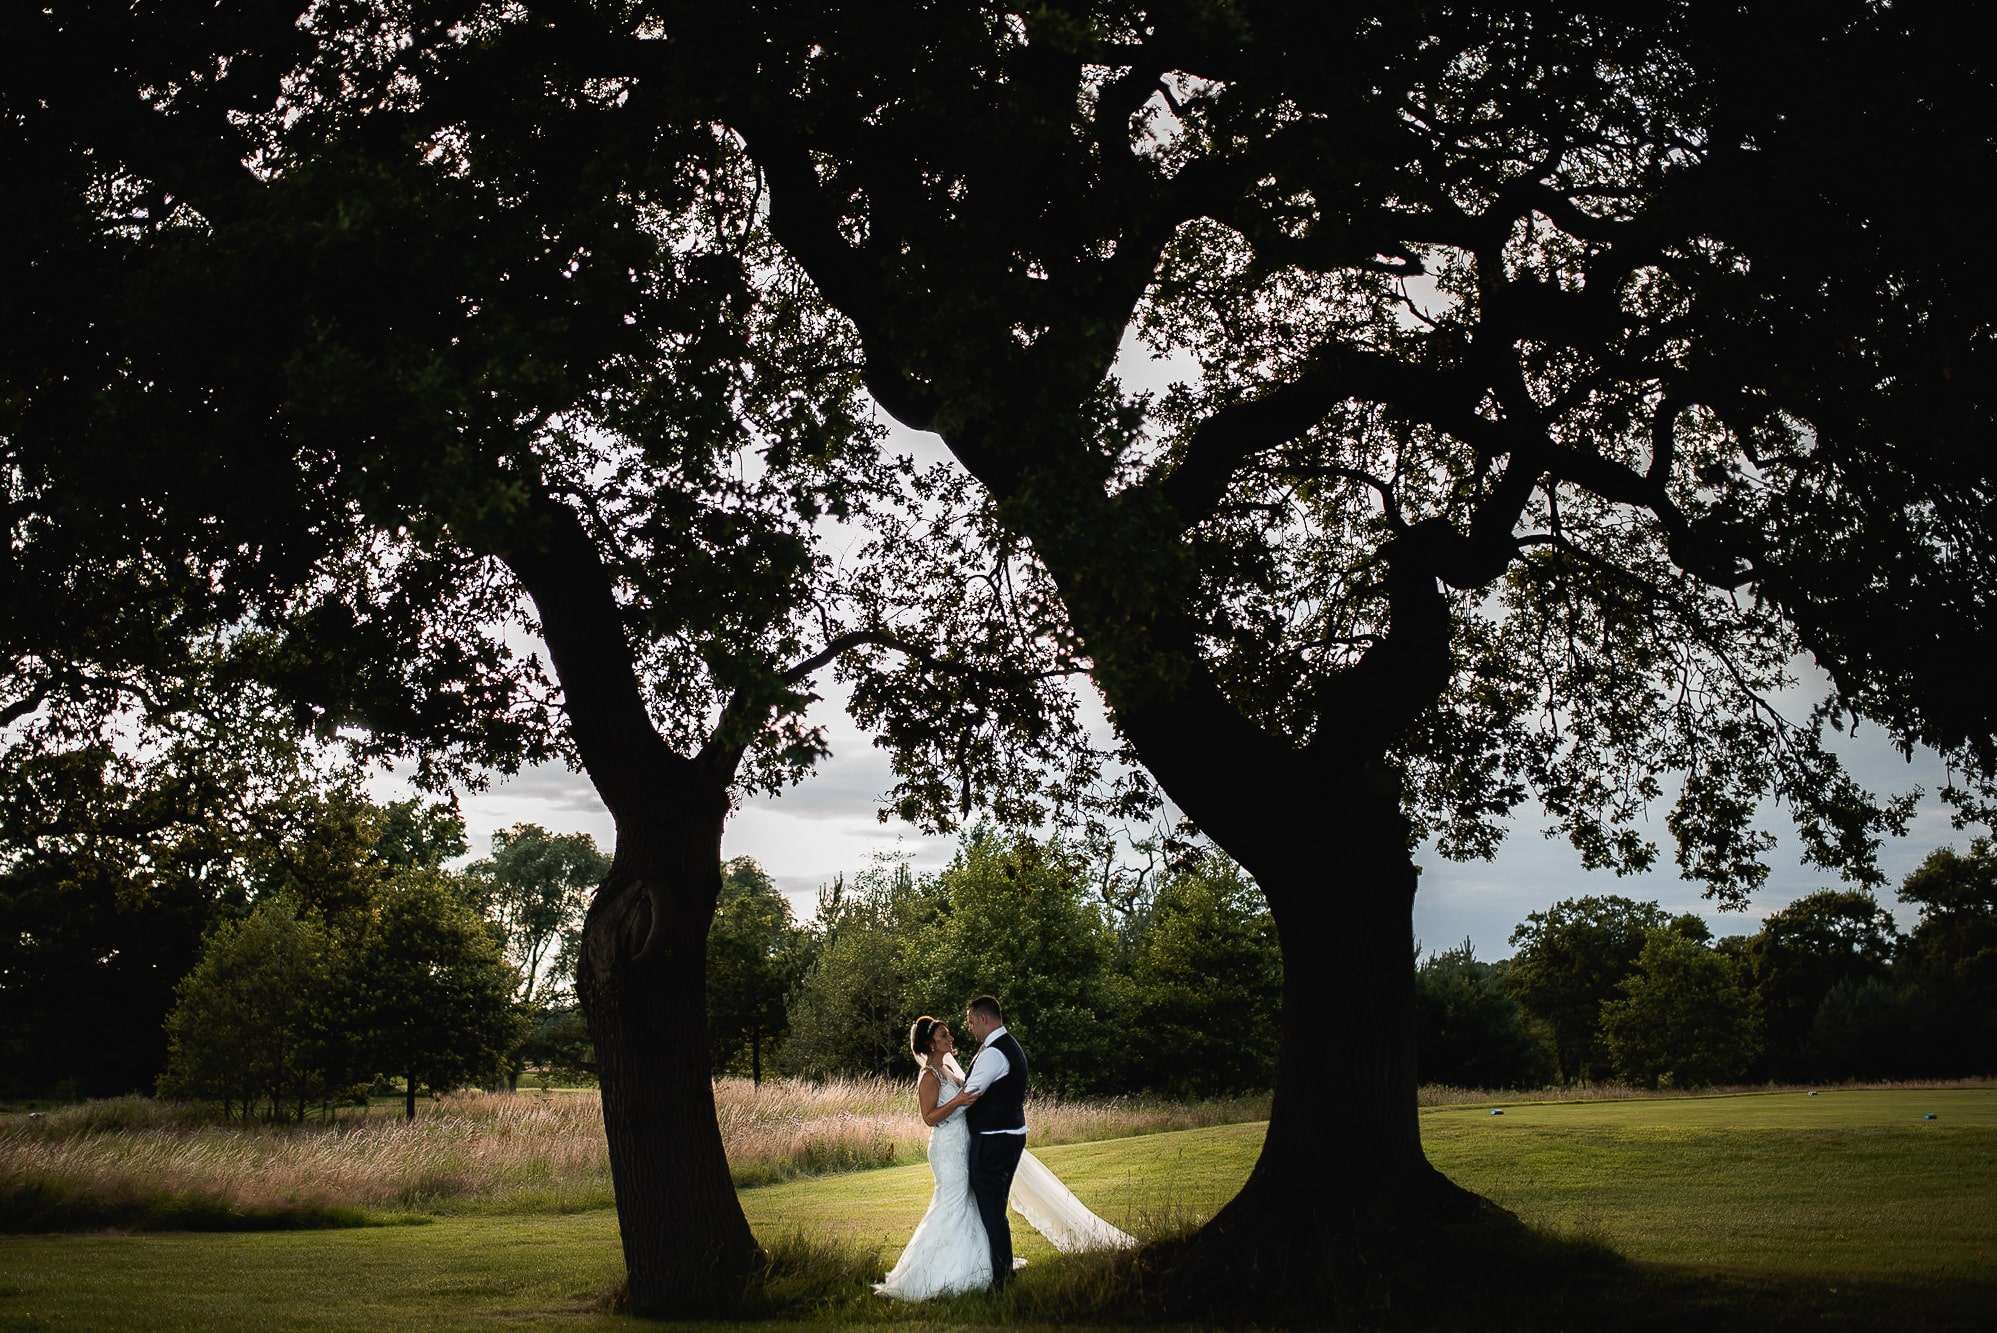 Bride and groom going for a walk in the trees